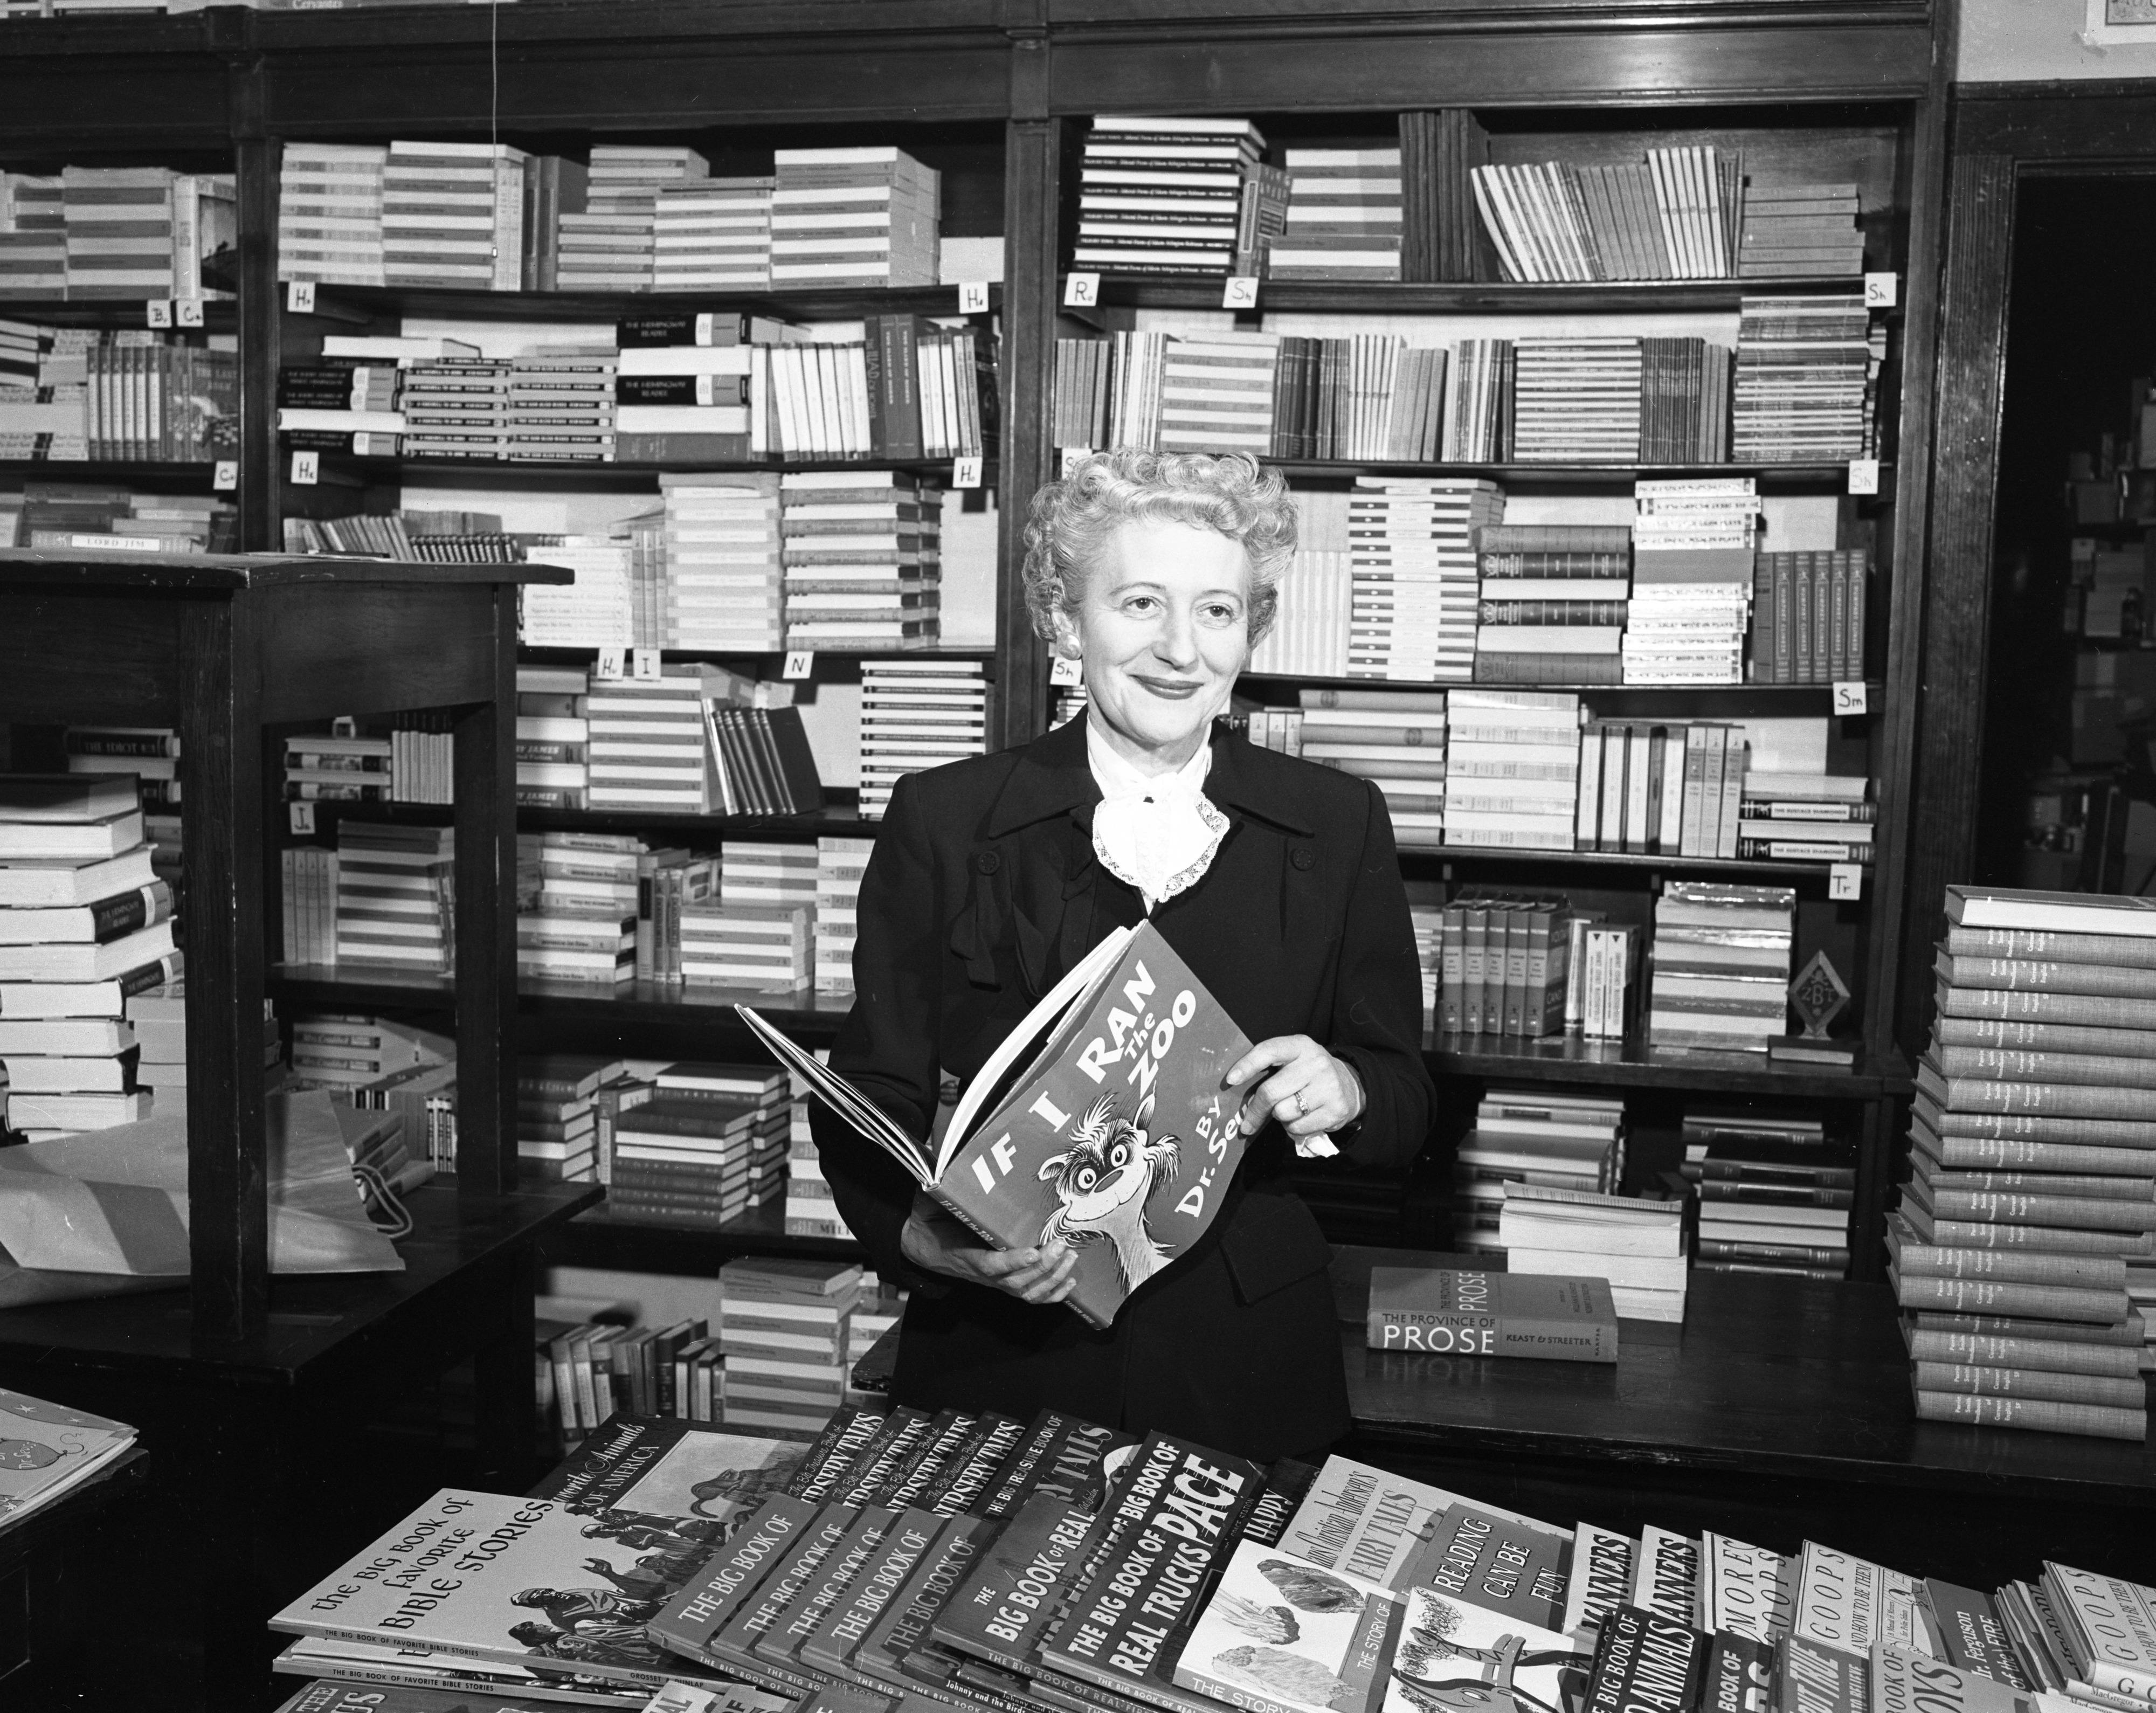 Florence Slater, Sports Enthusiast and Owner of Slater's Book Store In Nickels Arcade, February 1957 image